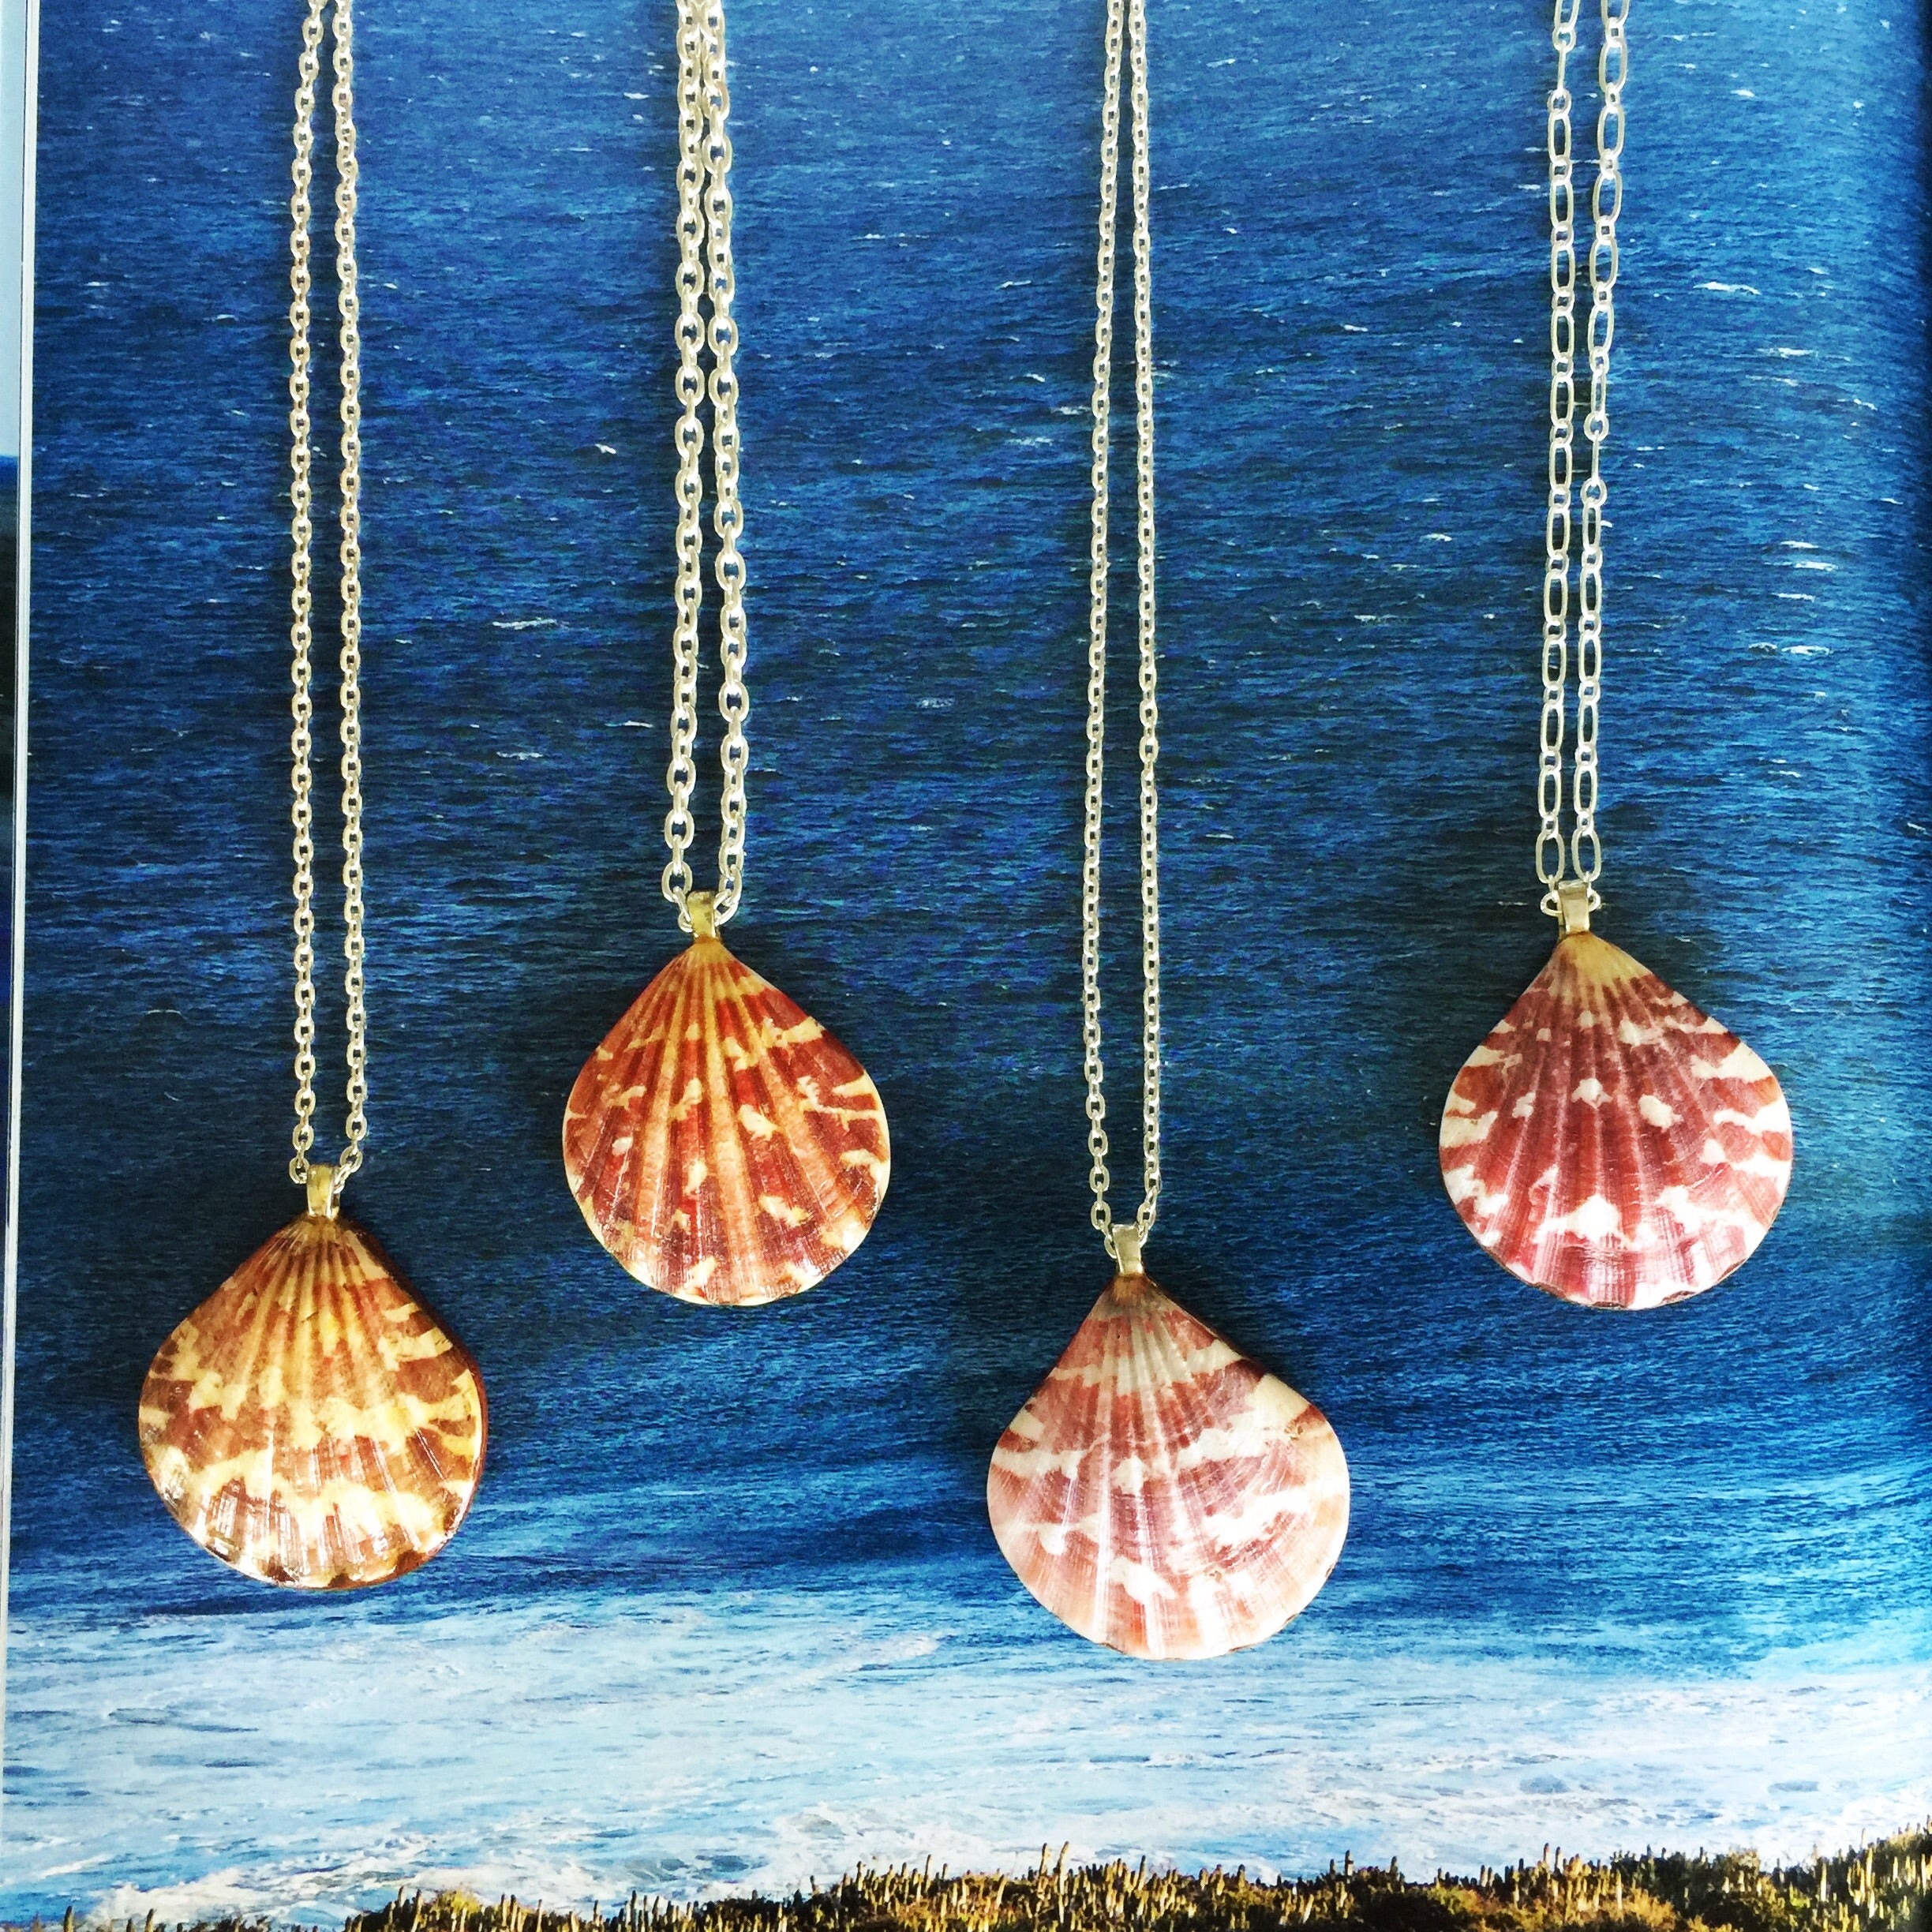 Sunrise Shell Necklaces| 42-45 - Honorooroo Lifestyle